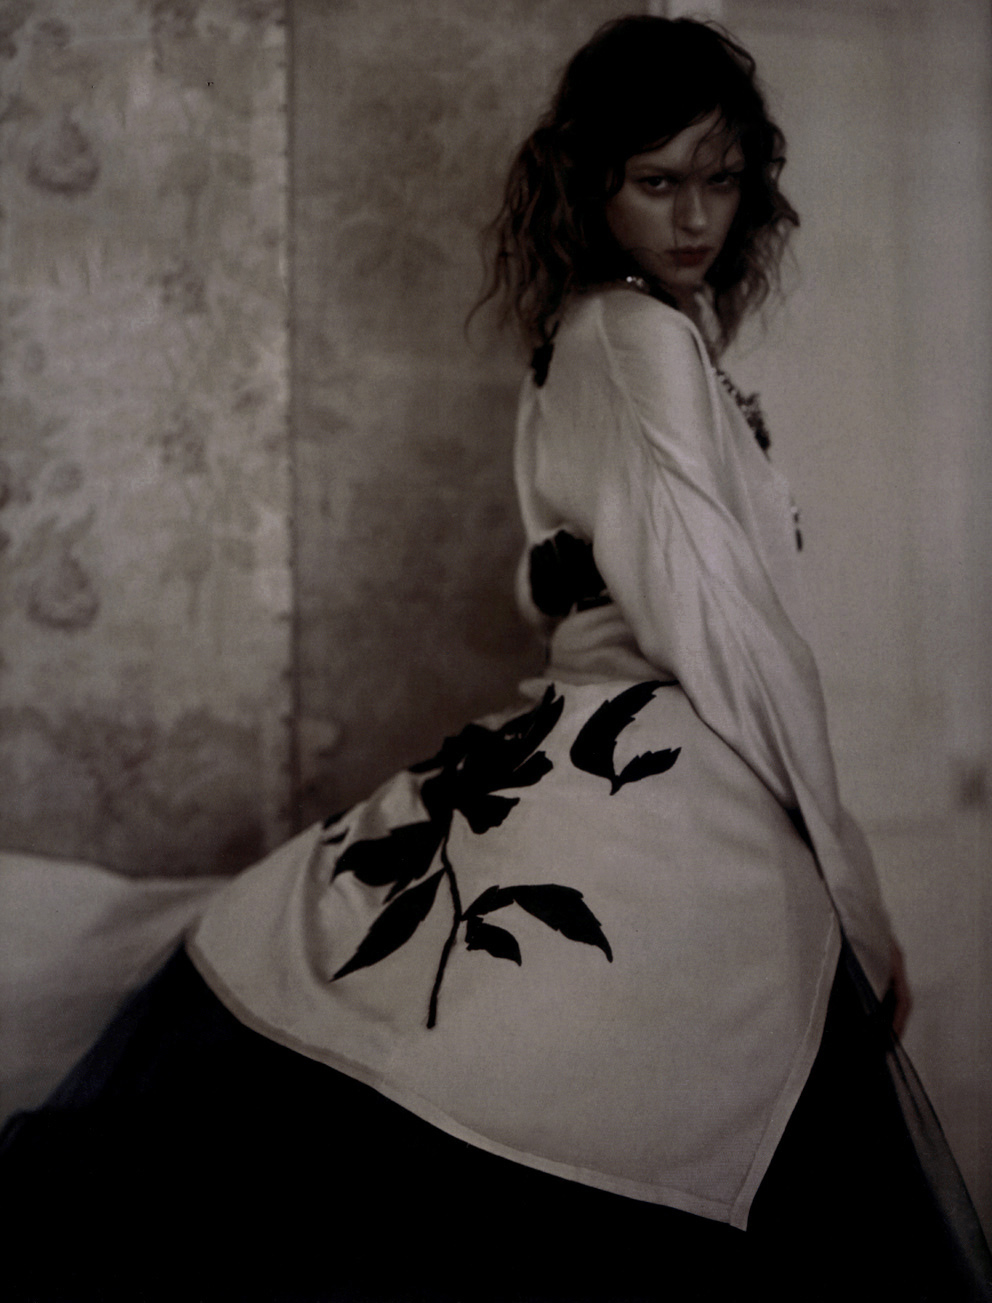 Elise Crombez in Lanvin by Alber Elbaz photographed by Paolo Roversi for Vogue Uk September 2004 via www.fashionedbylove.co.uk